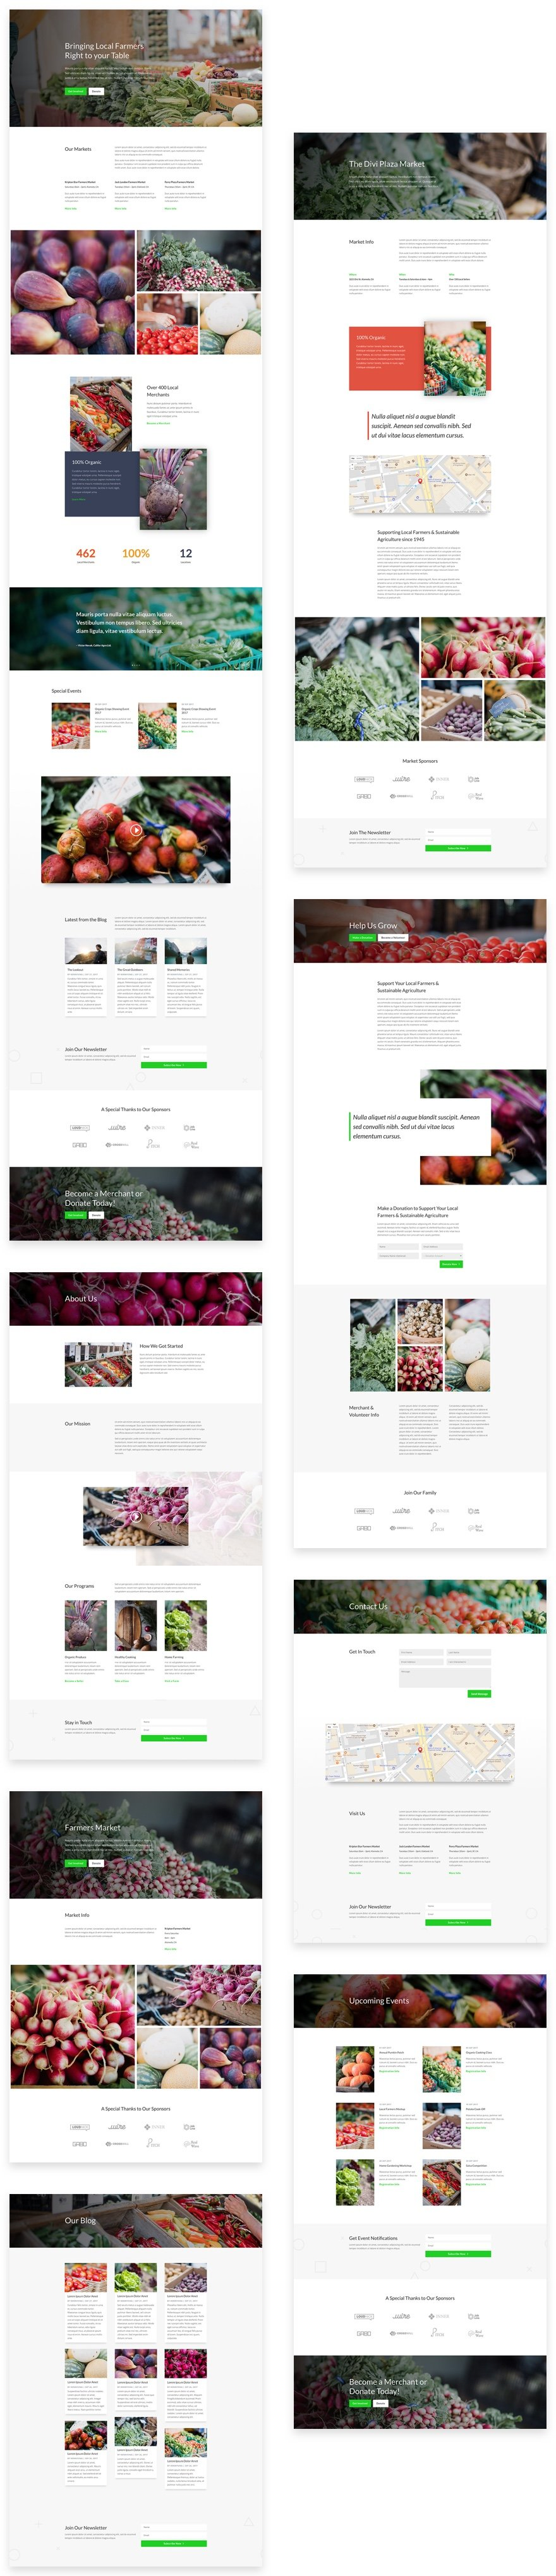 divi-farmers-market-layout-pack-grid